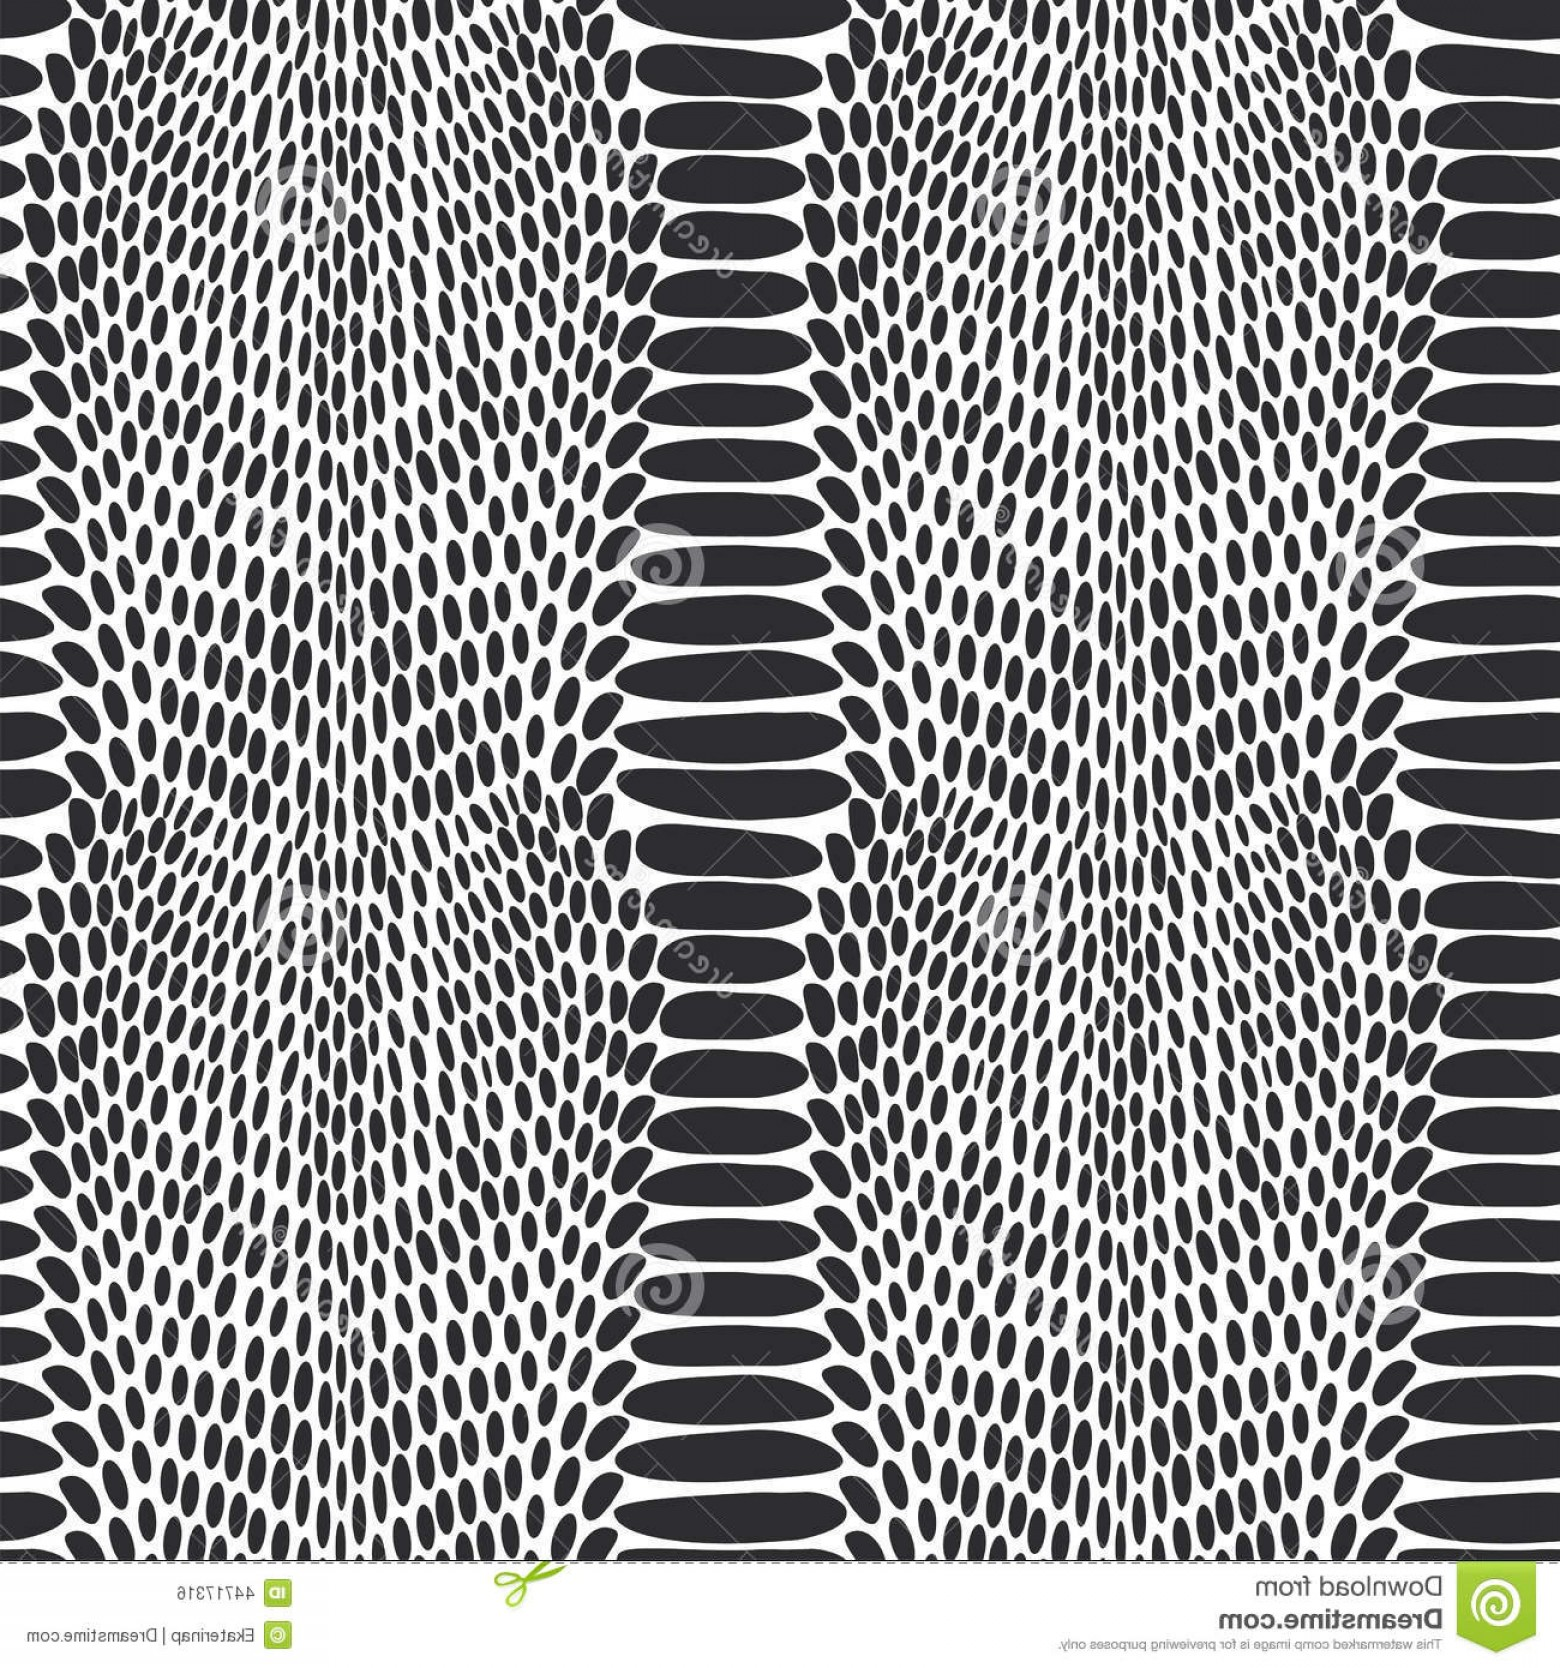 Rattlesnake Skin Vector: Snake Skin Texture Seamless Pattern Black On White Background Illustration